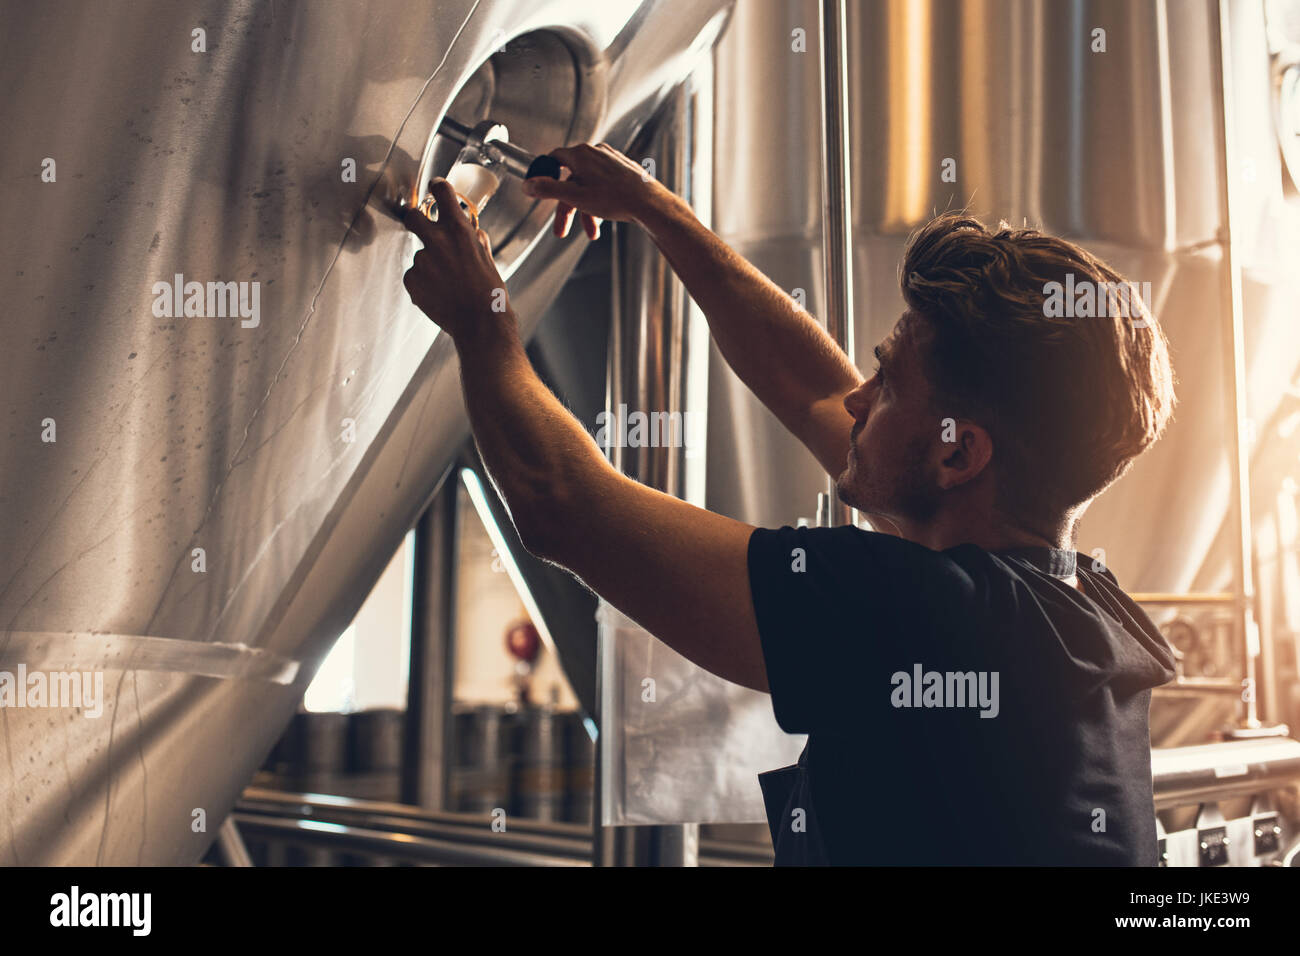 Brewer closing the hatch of brewery tank. Young male employee working in beer manufacturing factory. - Stock Image